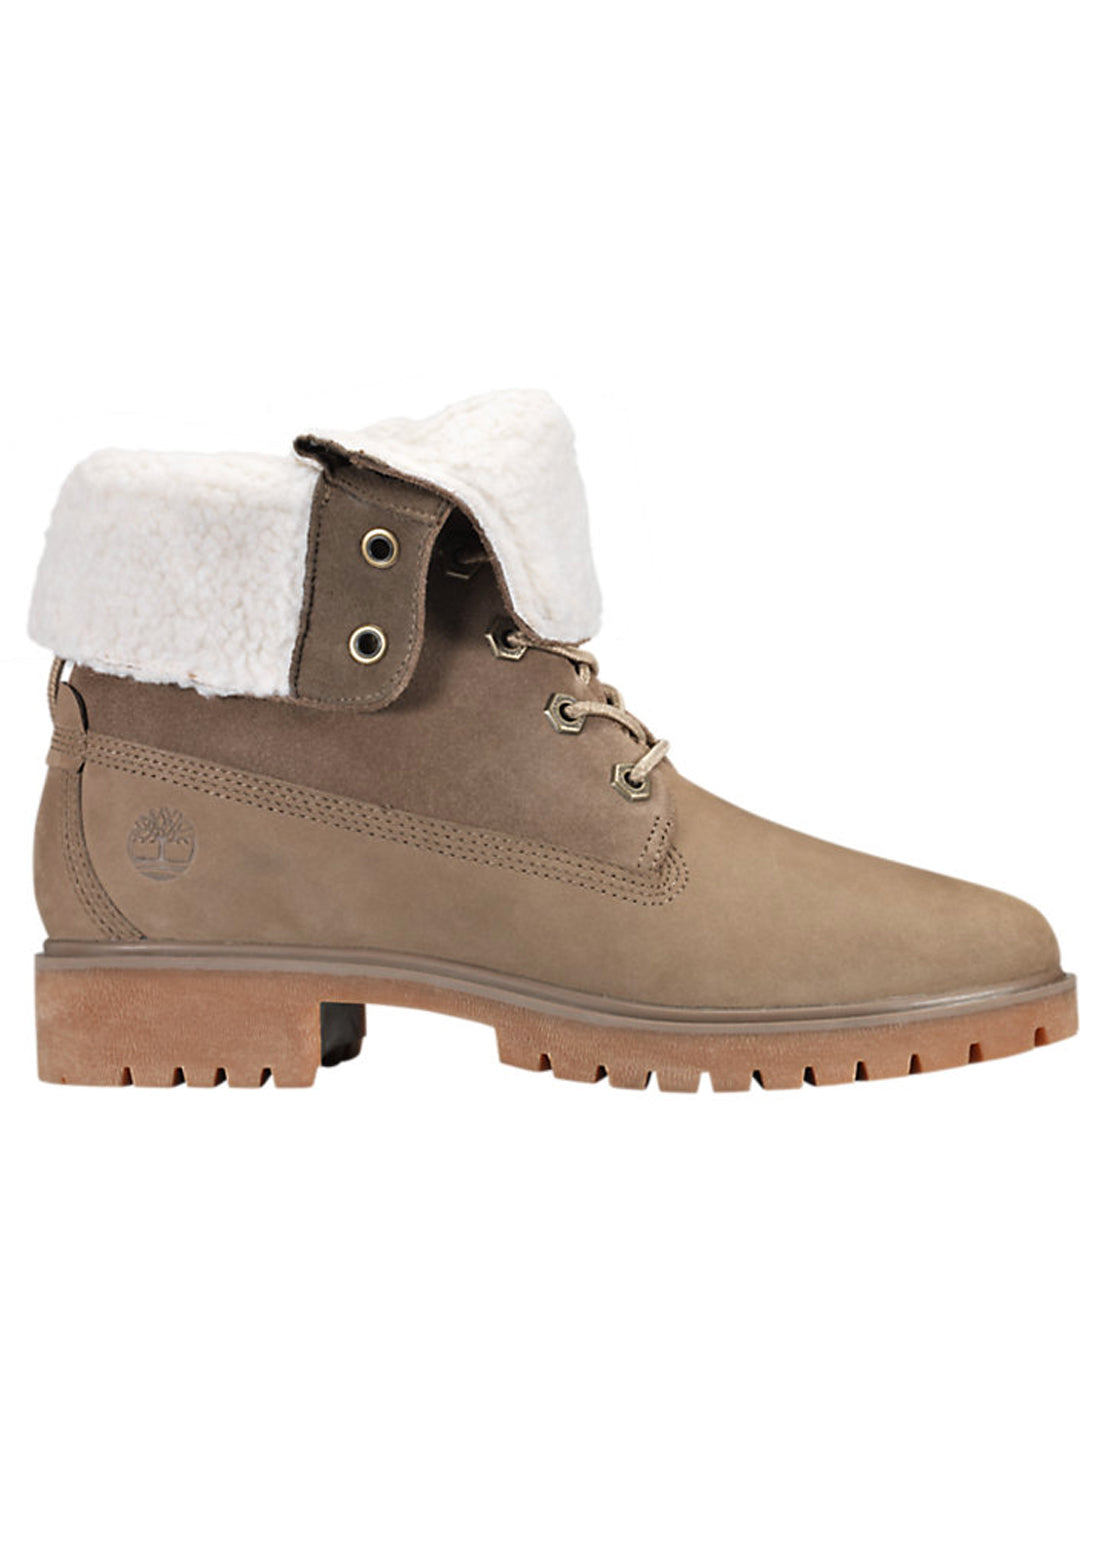 Timberland Women's Jayne Teddy Fleece Waterproof Boots Light Brown Nubuck